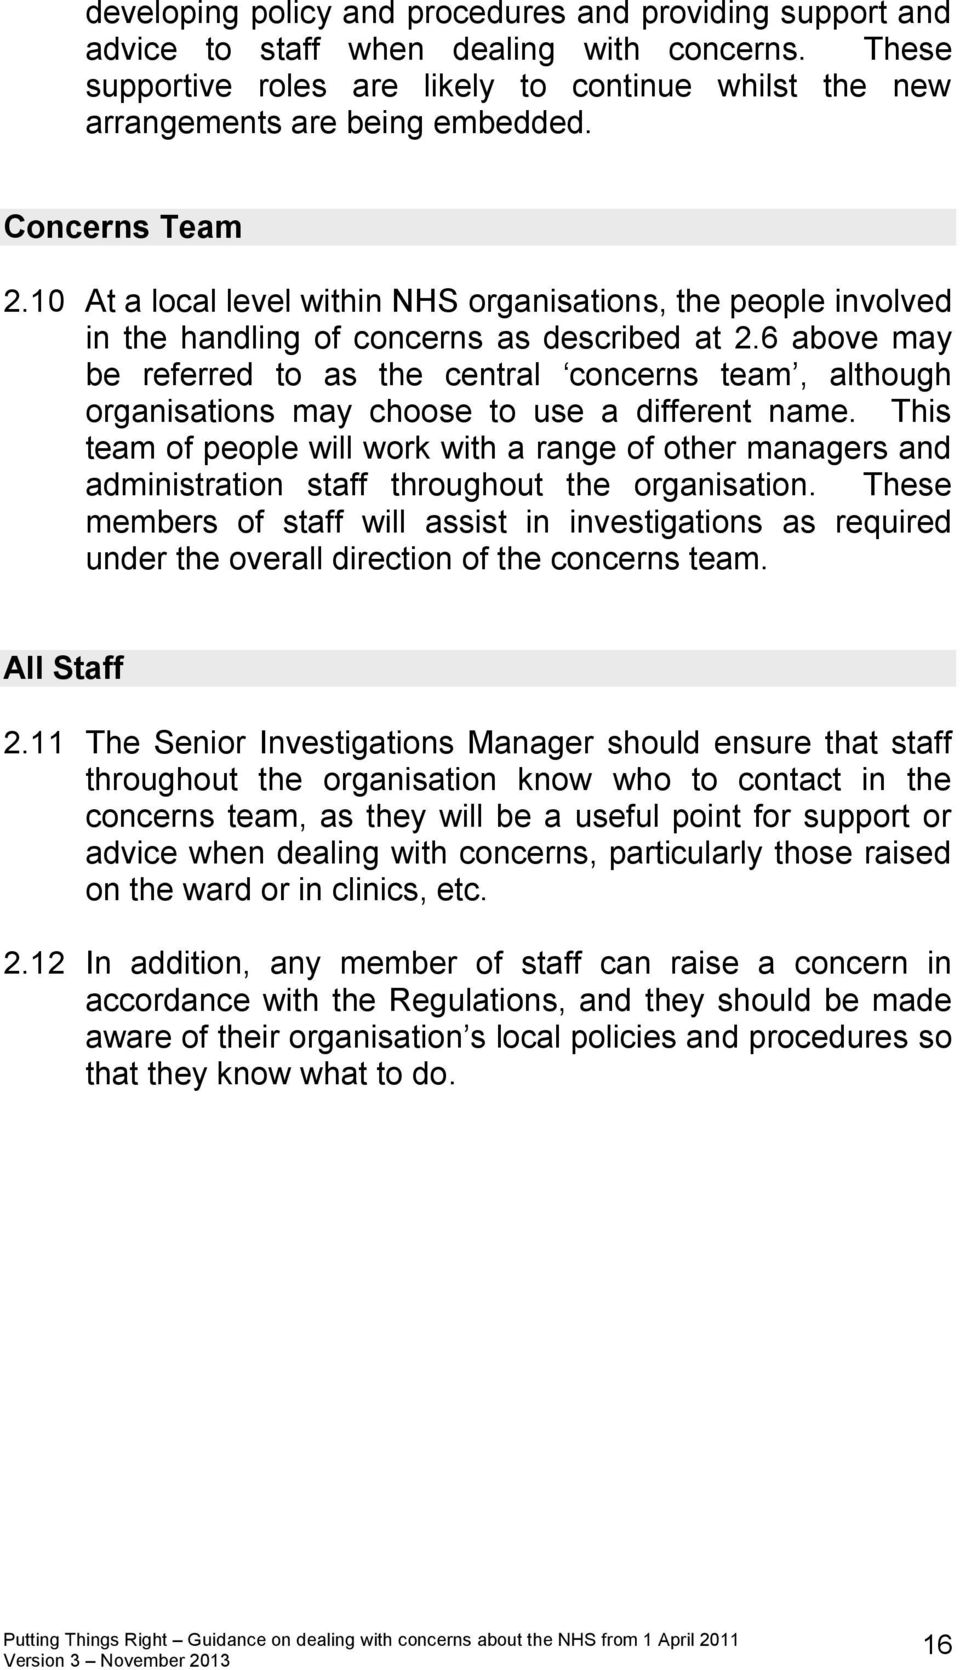 6 above may be referred to as the central concerns team, although organisations may choose to use a different name.